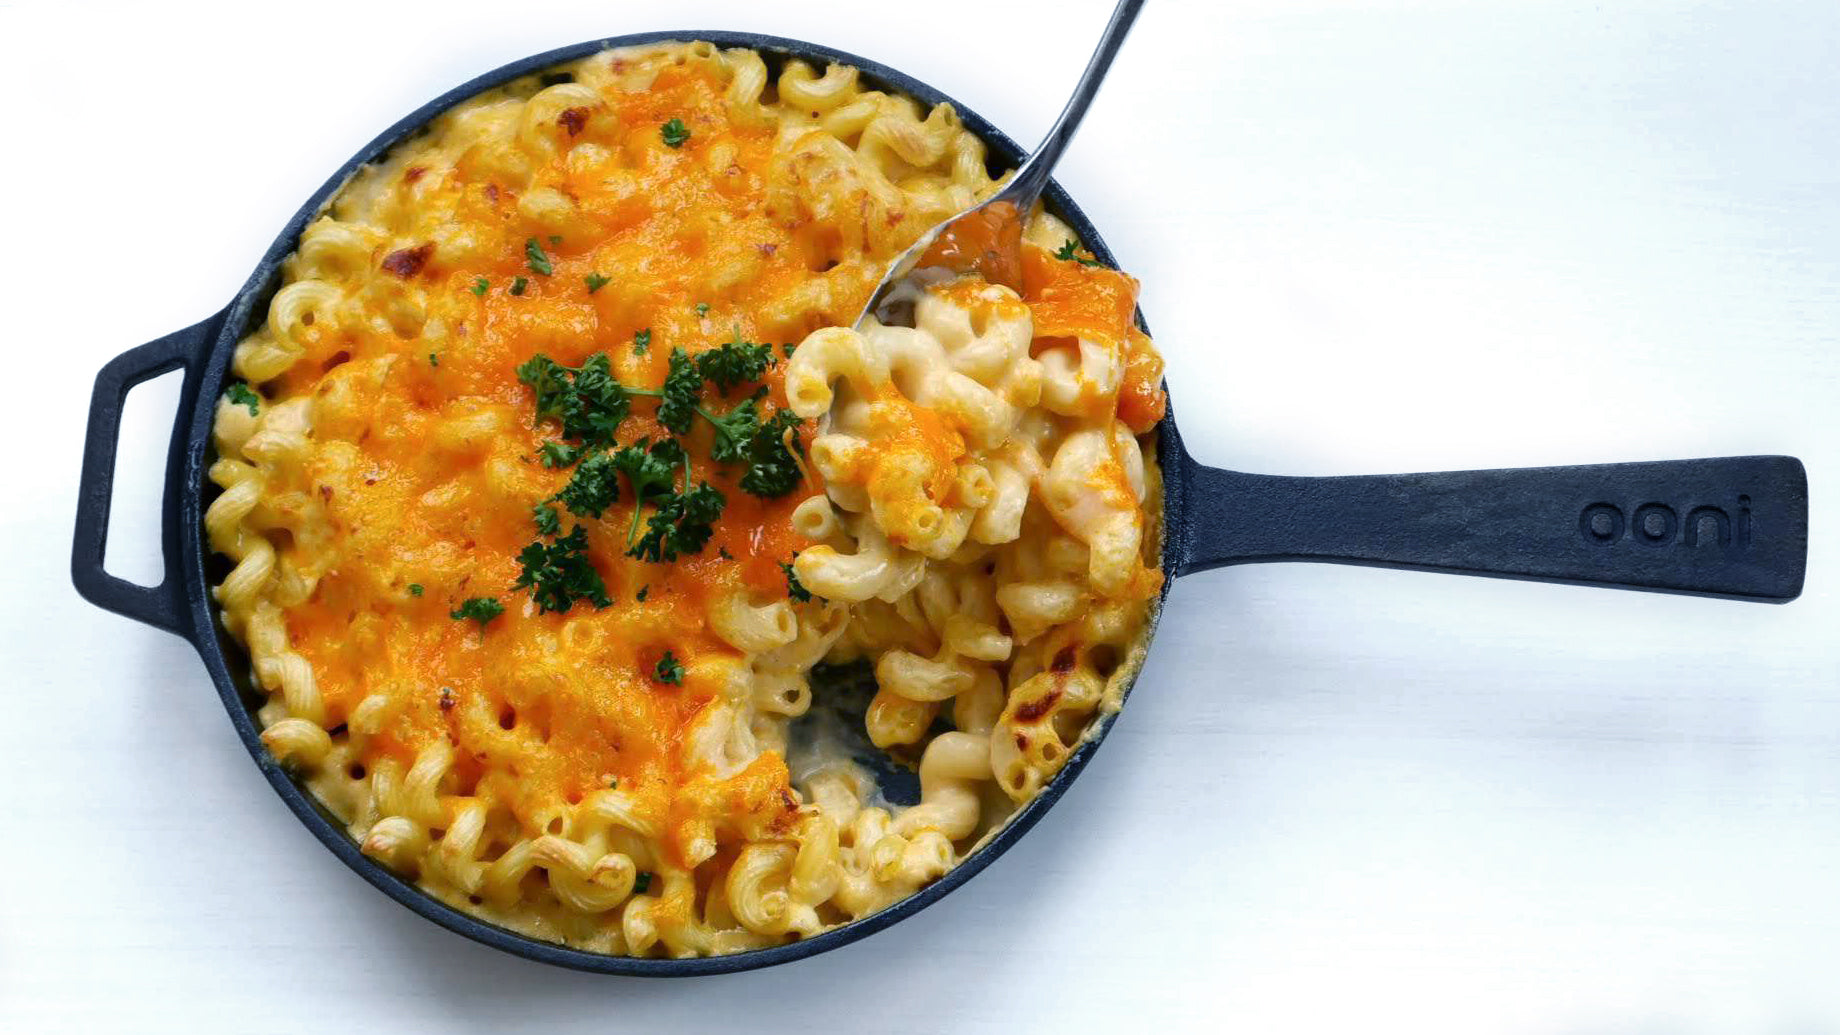 Skillet Baked Mac and Cheese Featured Image